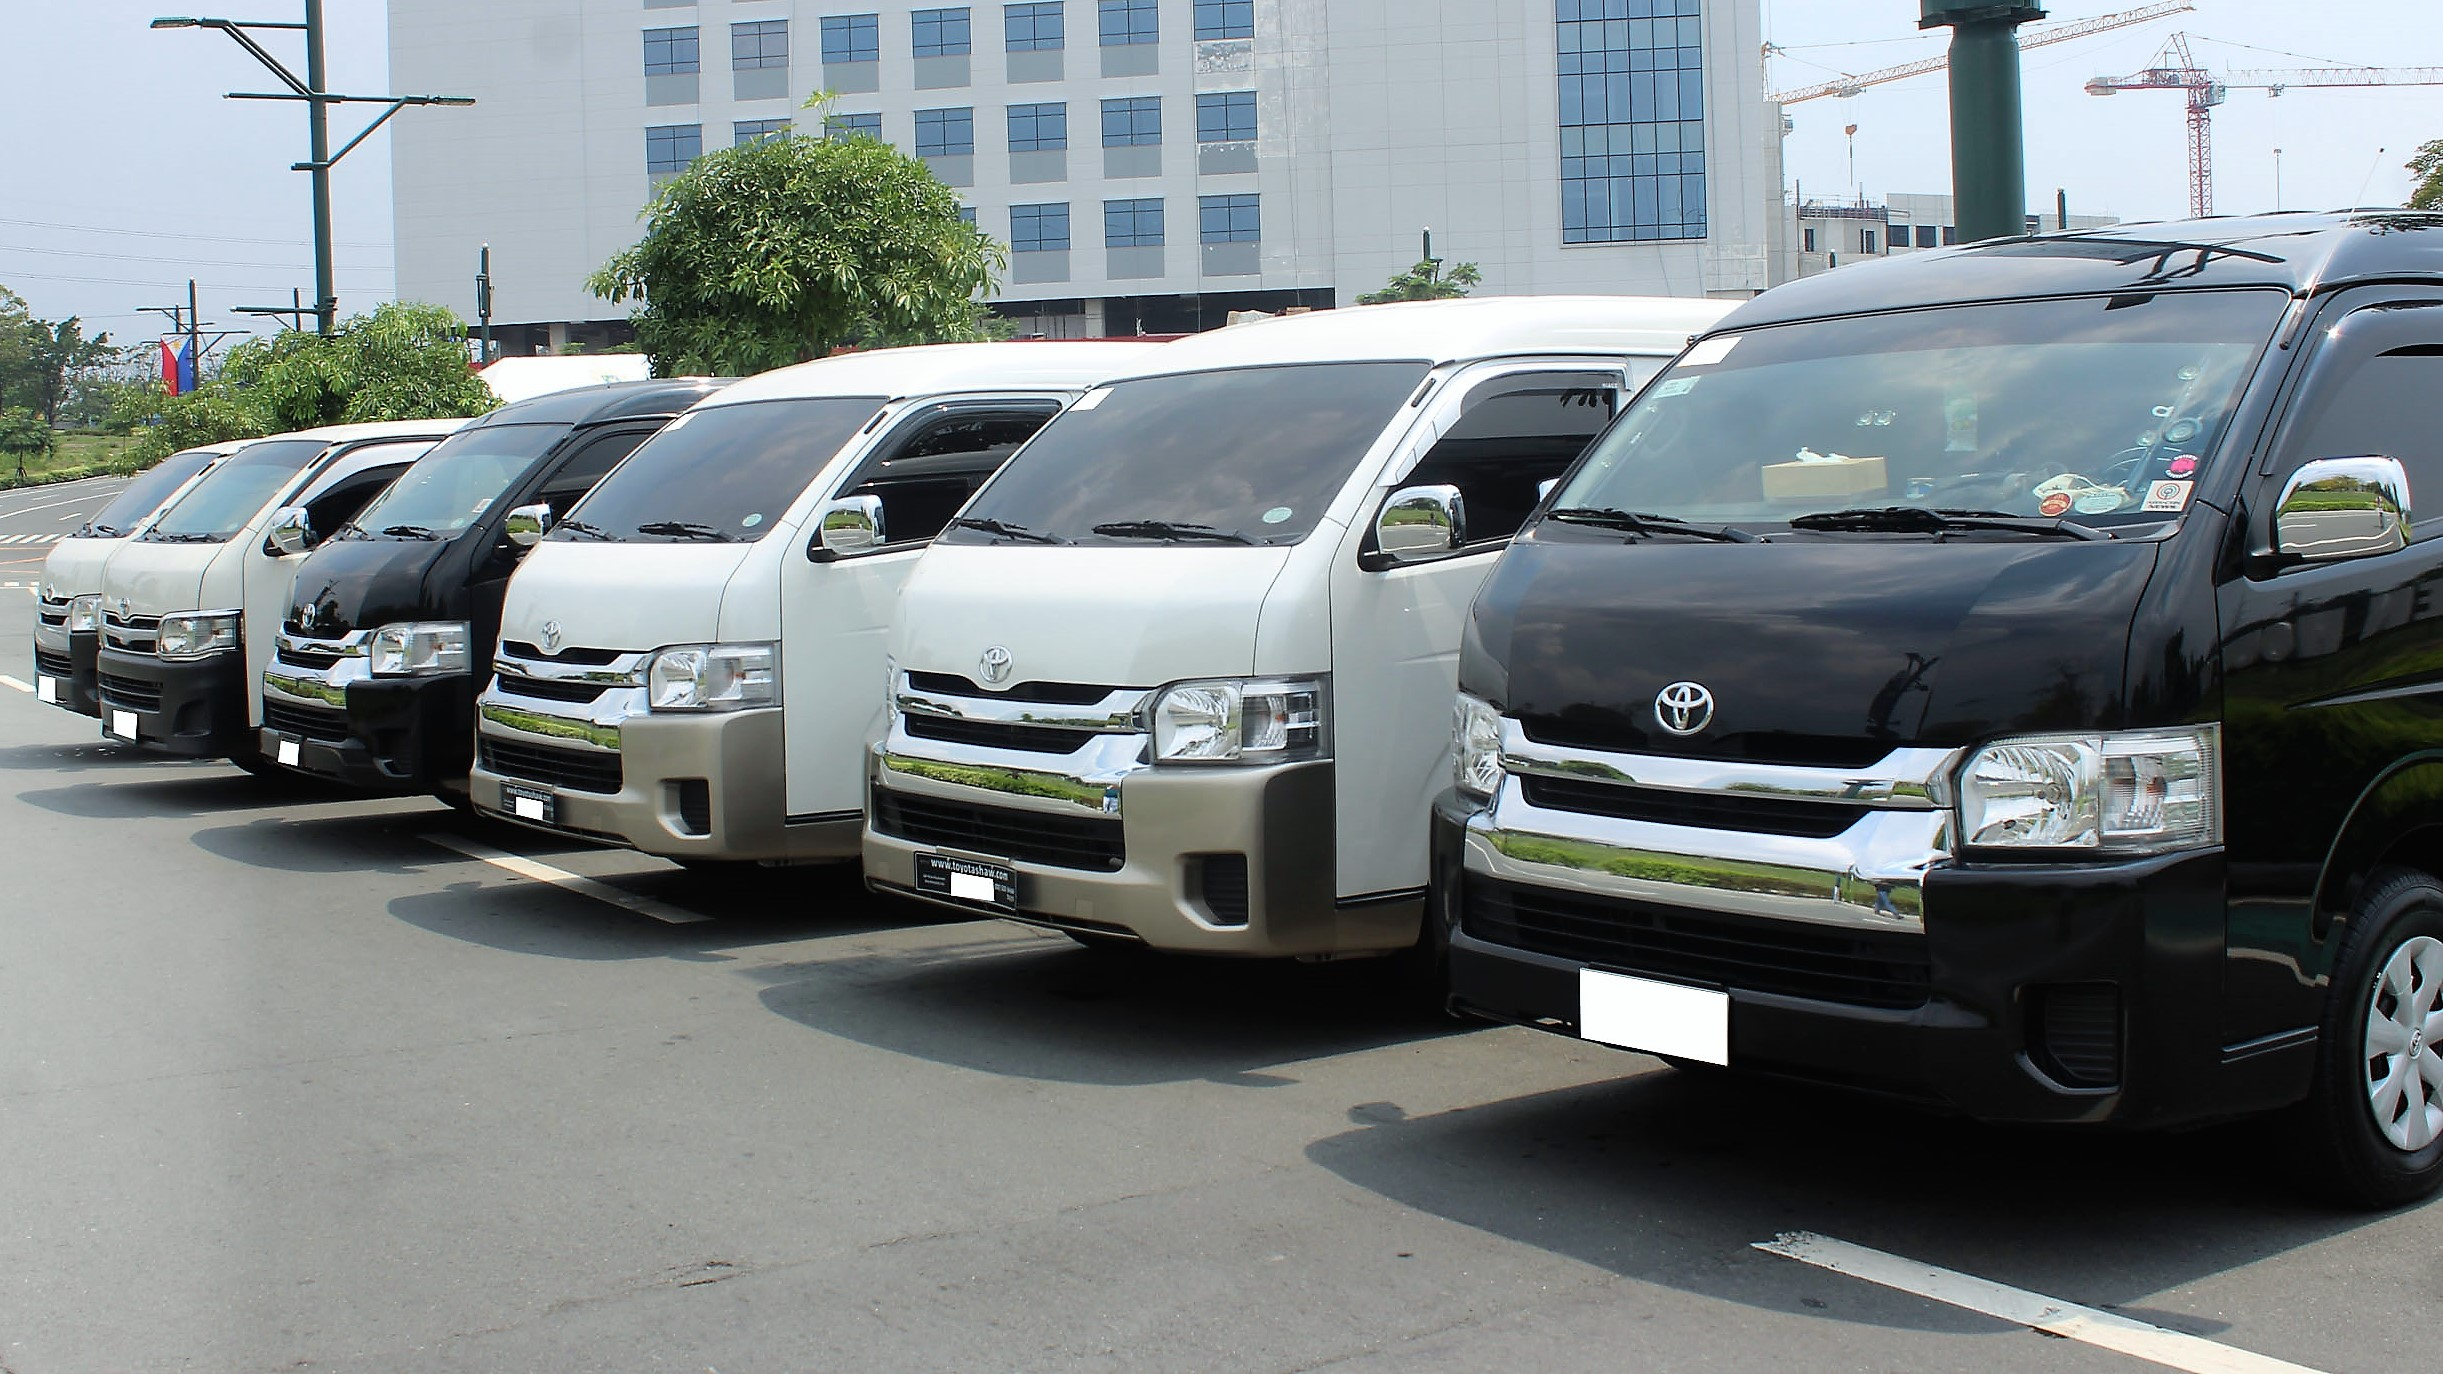 Van for rent, Van for hire, Van rental, Rent a van